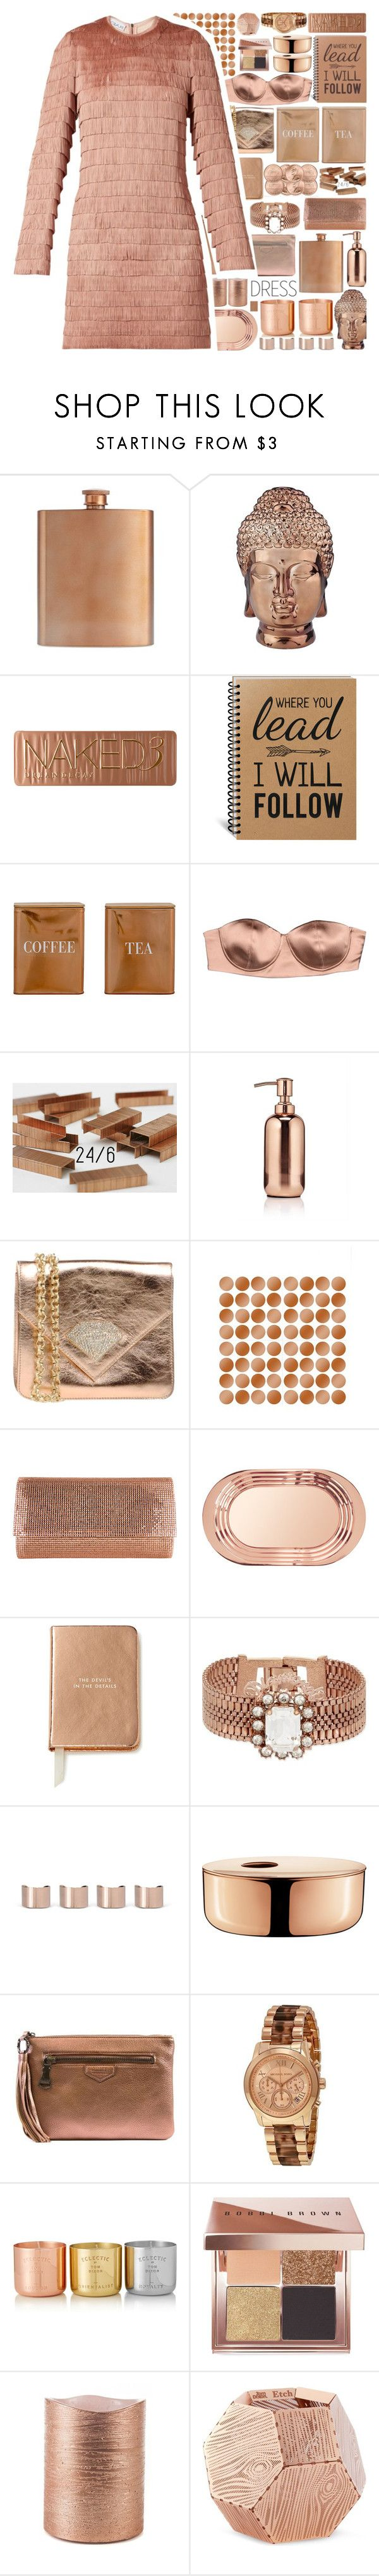 """""""Perfect Party Dress"""" by stelbell ❤ liked on Polyvore featuring W&P Design, Abbyson Living, Urban Decay, Bloomingville, Elisabetta Franchi, Argento Antico, Wall Pops!, Judith Leiber, Tom Dixon and Kate Spade"""